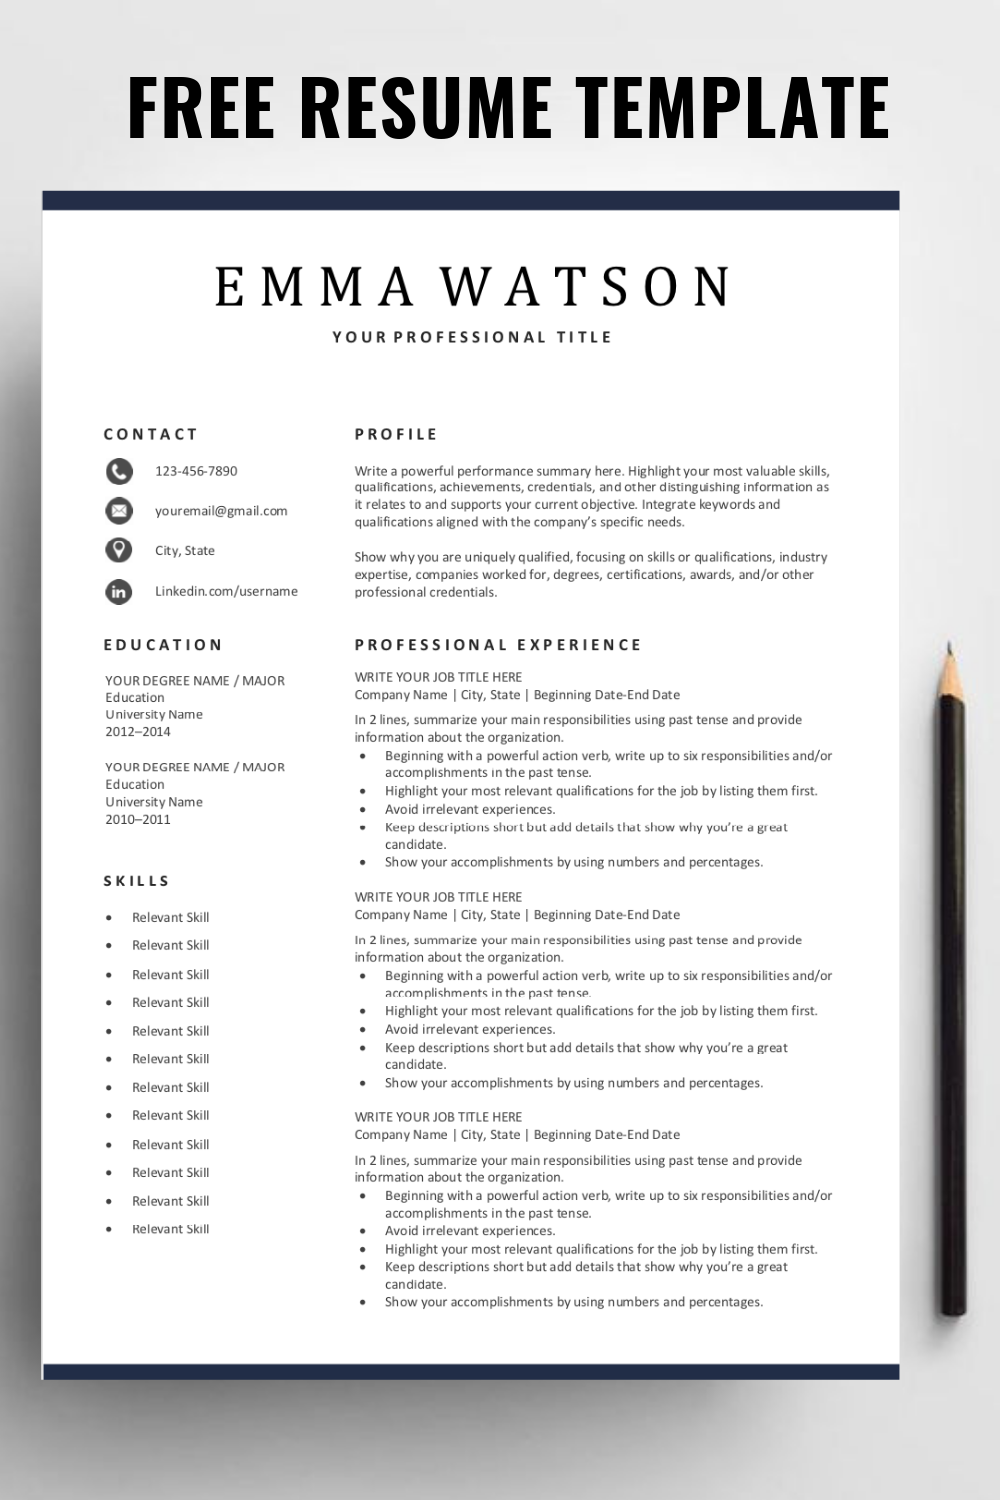 Are you looking for a free, editable resume template? Sign up for our job search...